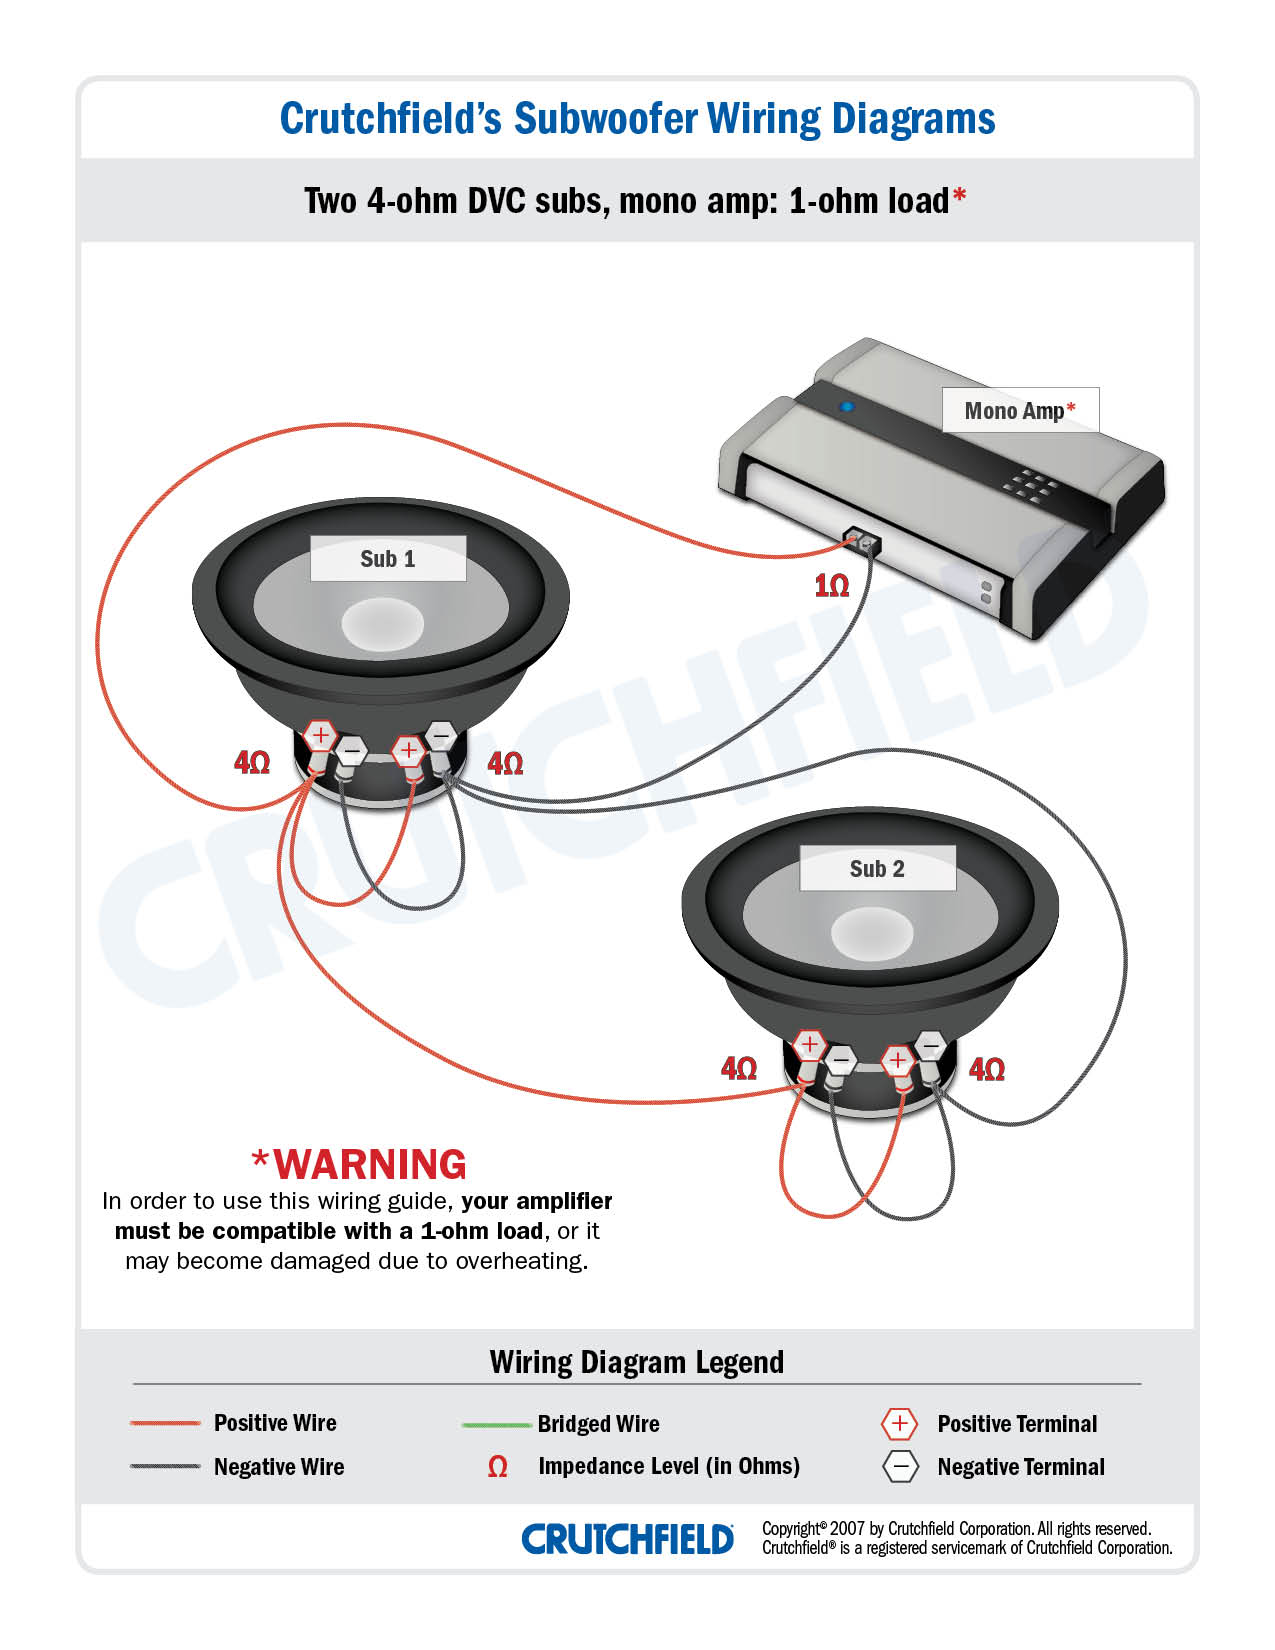 2 DVC 4 ohm mono low imp quick guide to matching subs & amps how to put together the best boston acoustics subsat 6 wiring diagram at alyssarenee.co